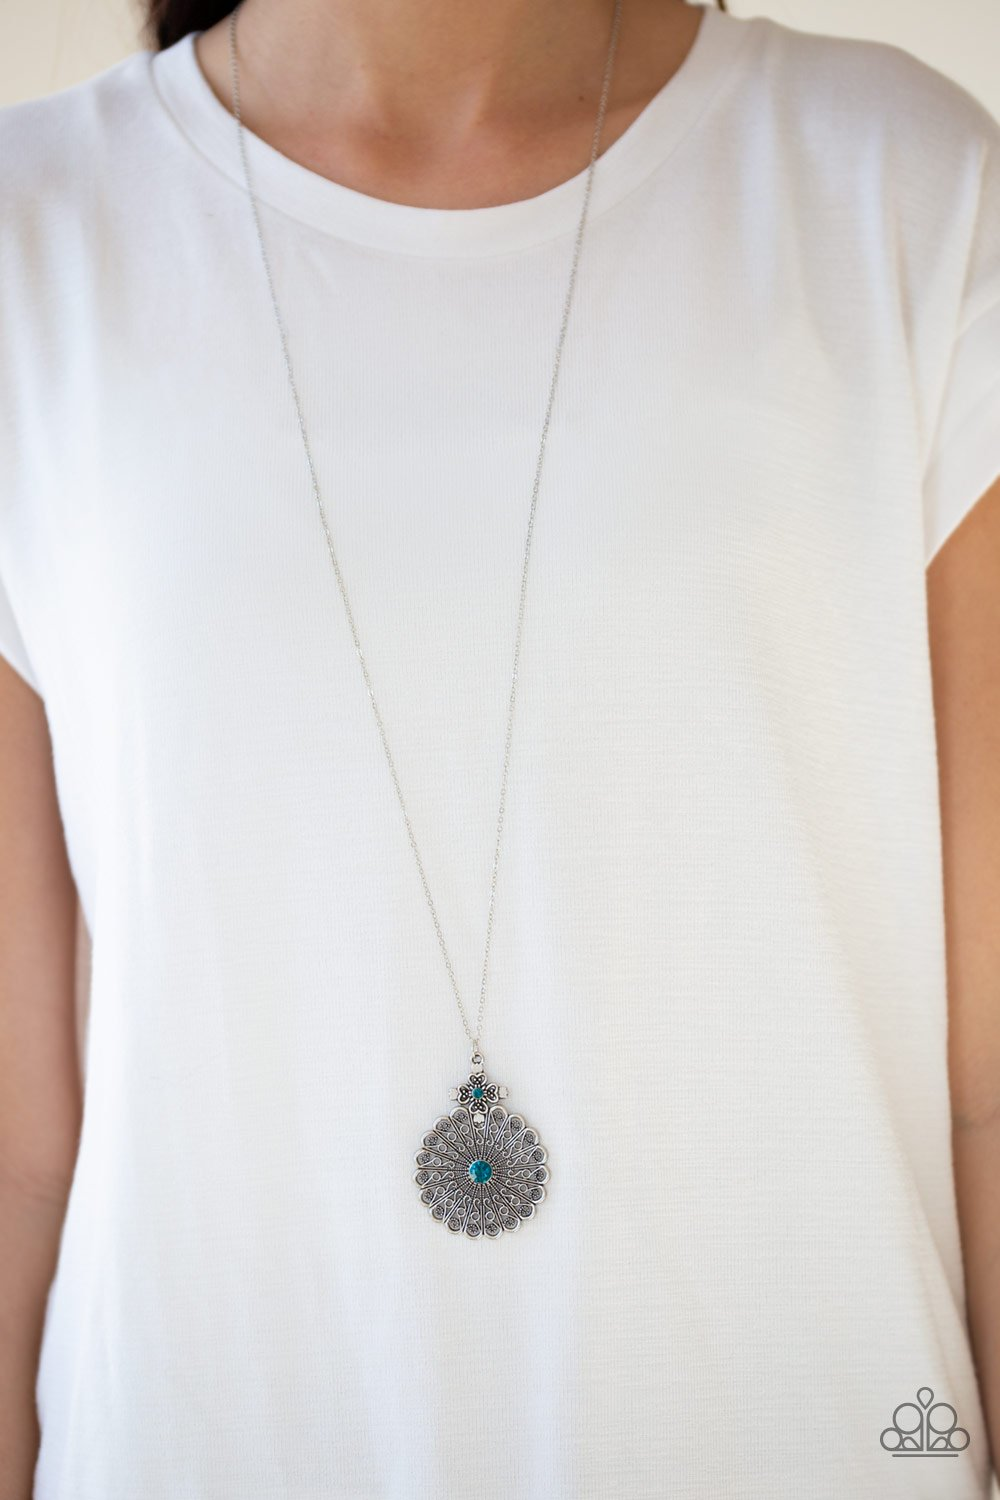 Walk On the WILDFLOWER Side-blue-Paparazzi necklace